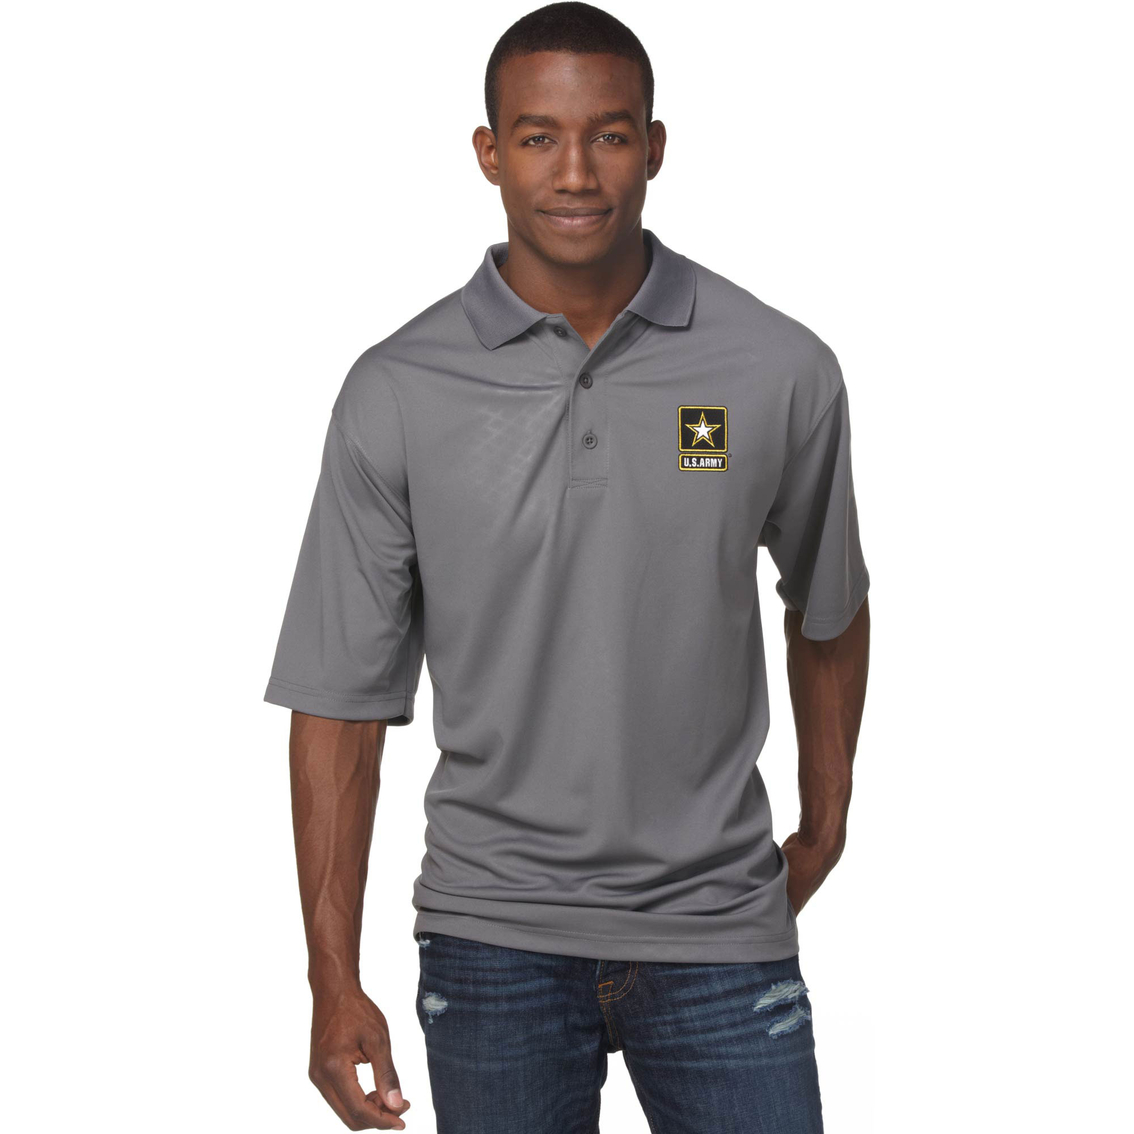 3c7a5544 Duke Performance Polo With Embroidered Army Insignia Gray | Apparel ...